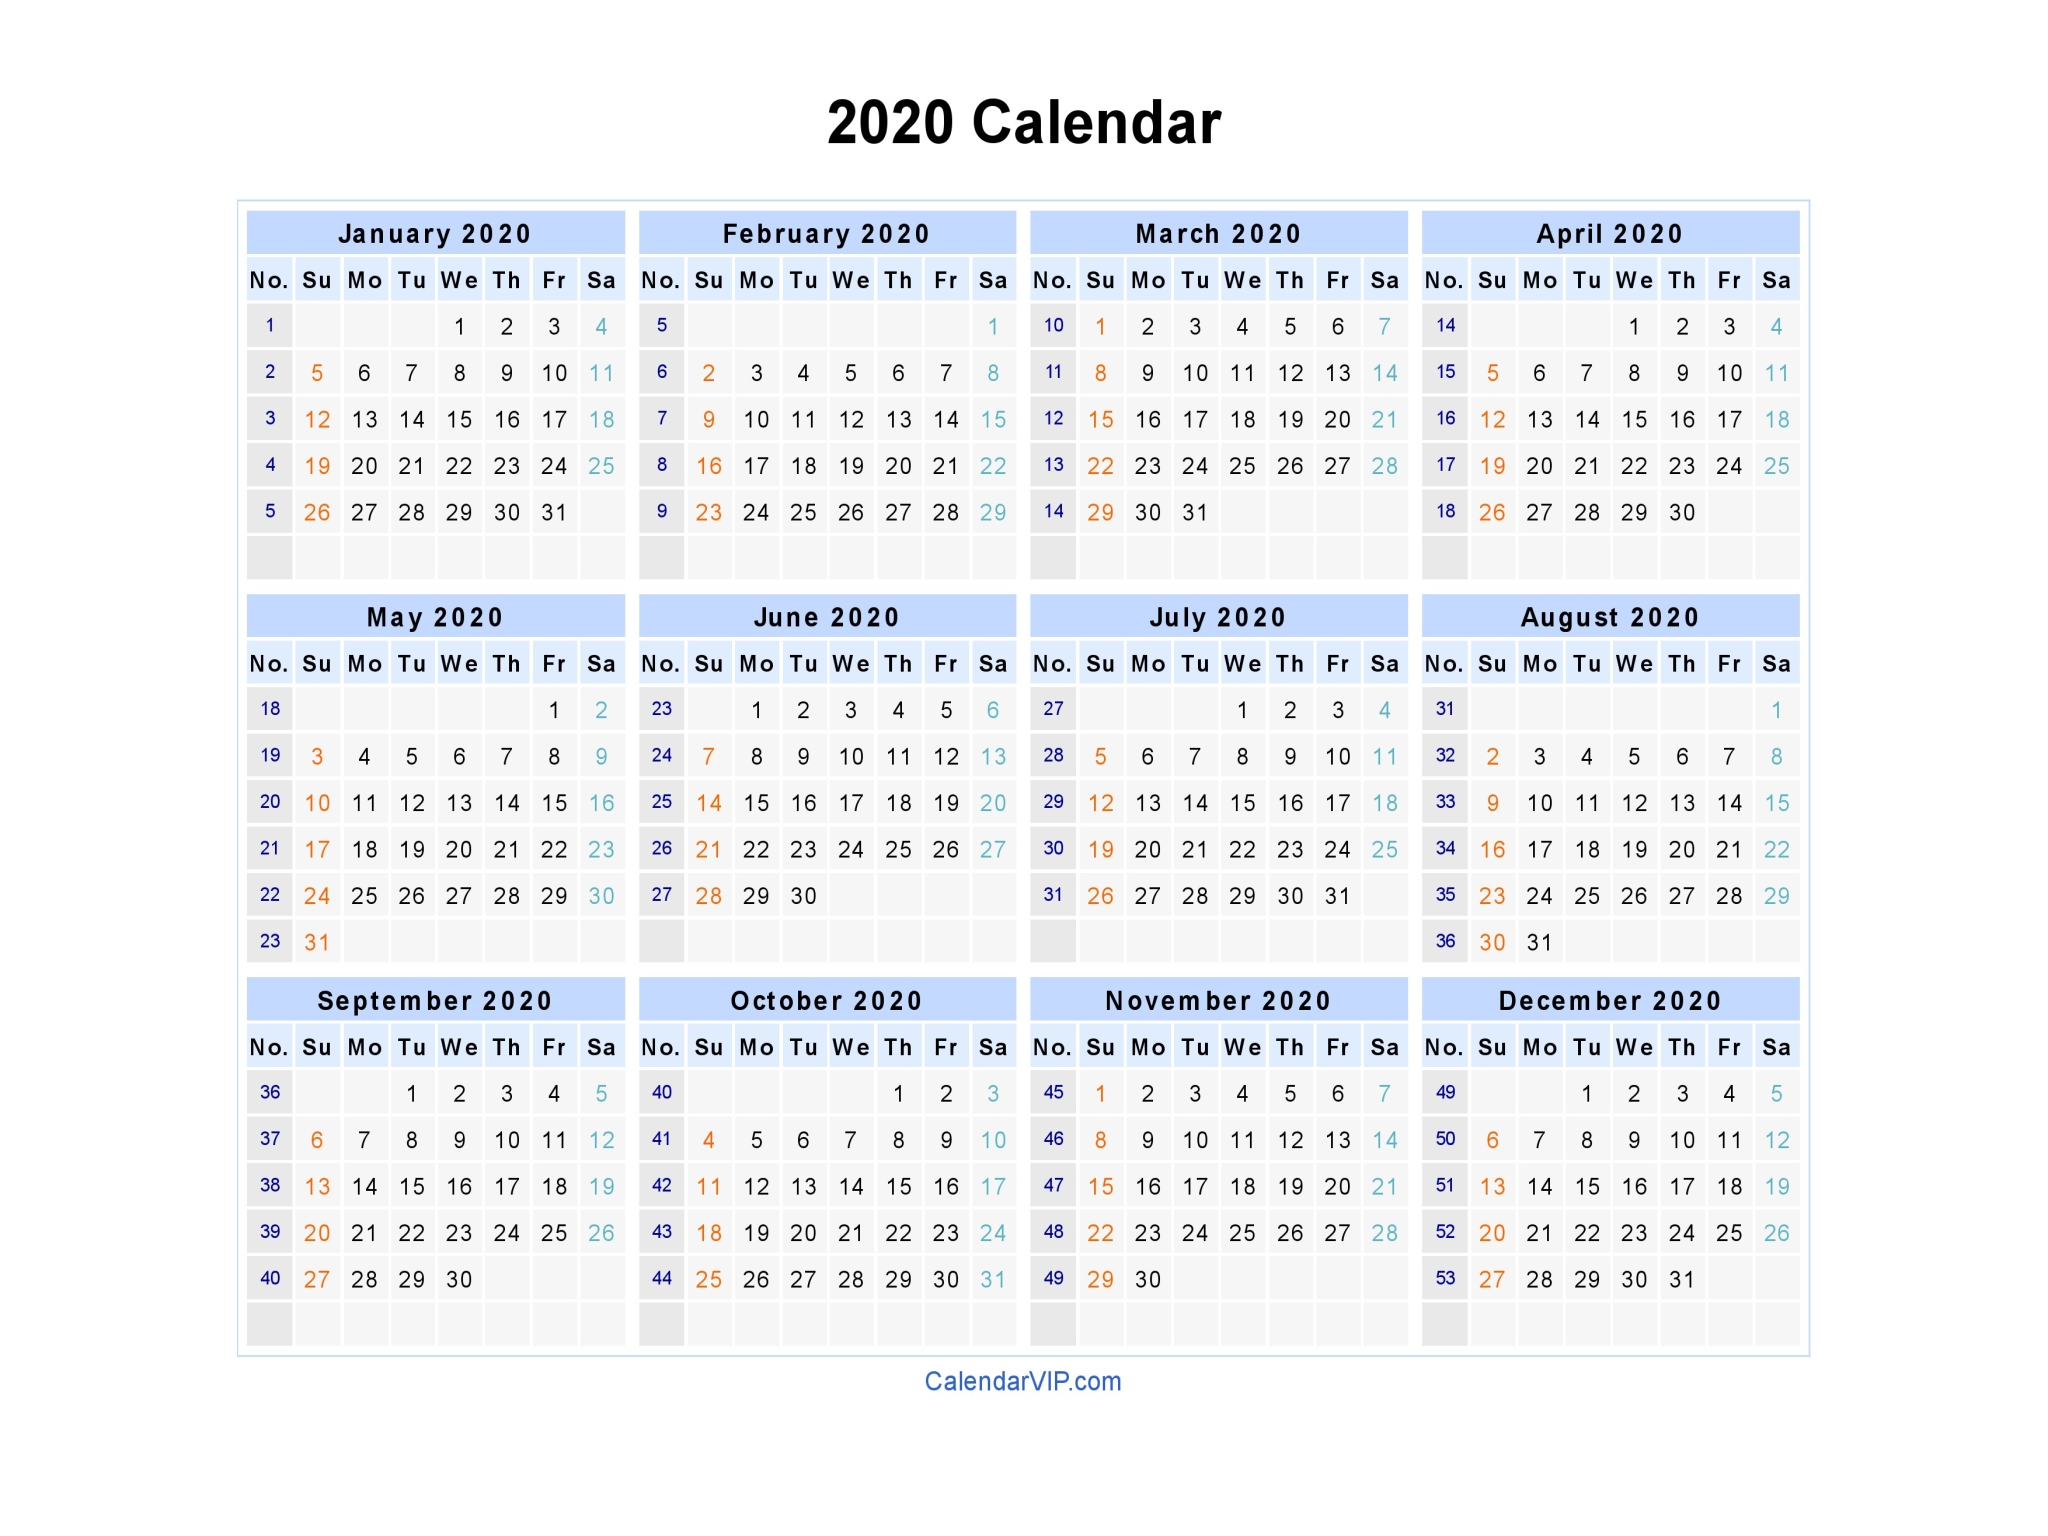 2020 Calendar - Blank Printable Calendar Template In Pdf Word Excel within 2020 Calendars That You Can Edit